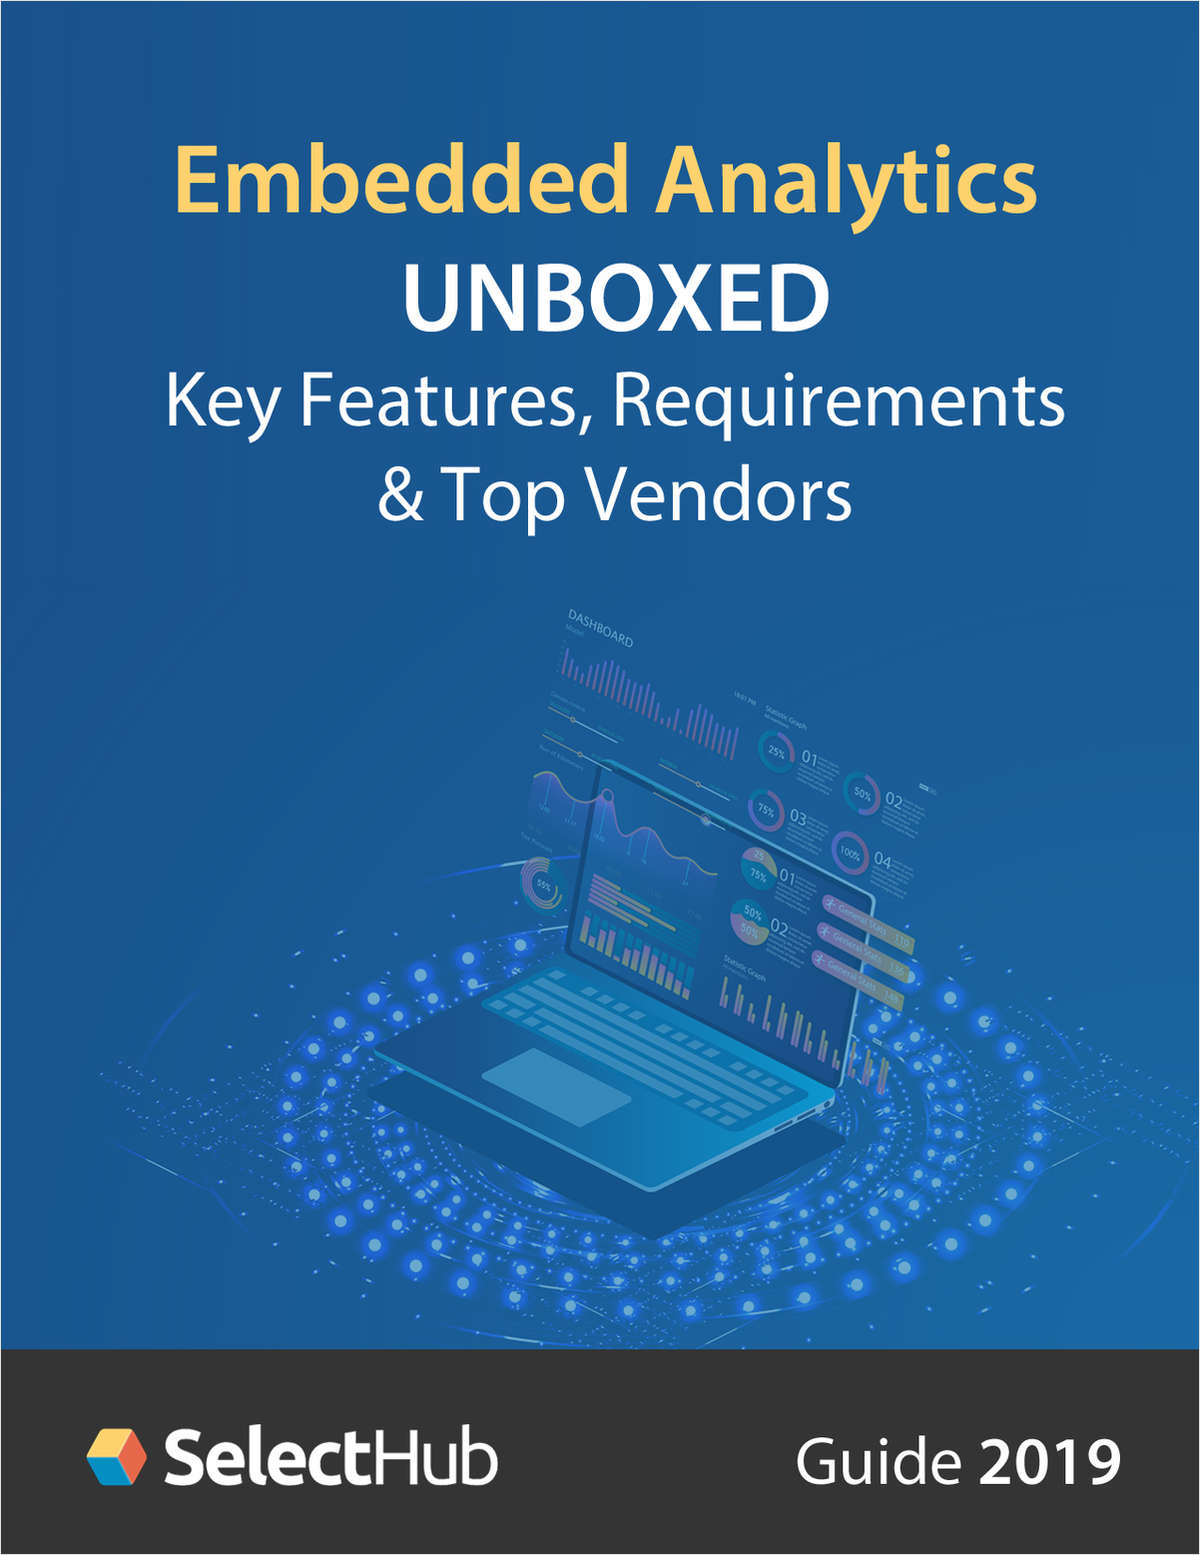 Embedded Analytics Unboxed: Key Features, Requirements & Top Vendors